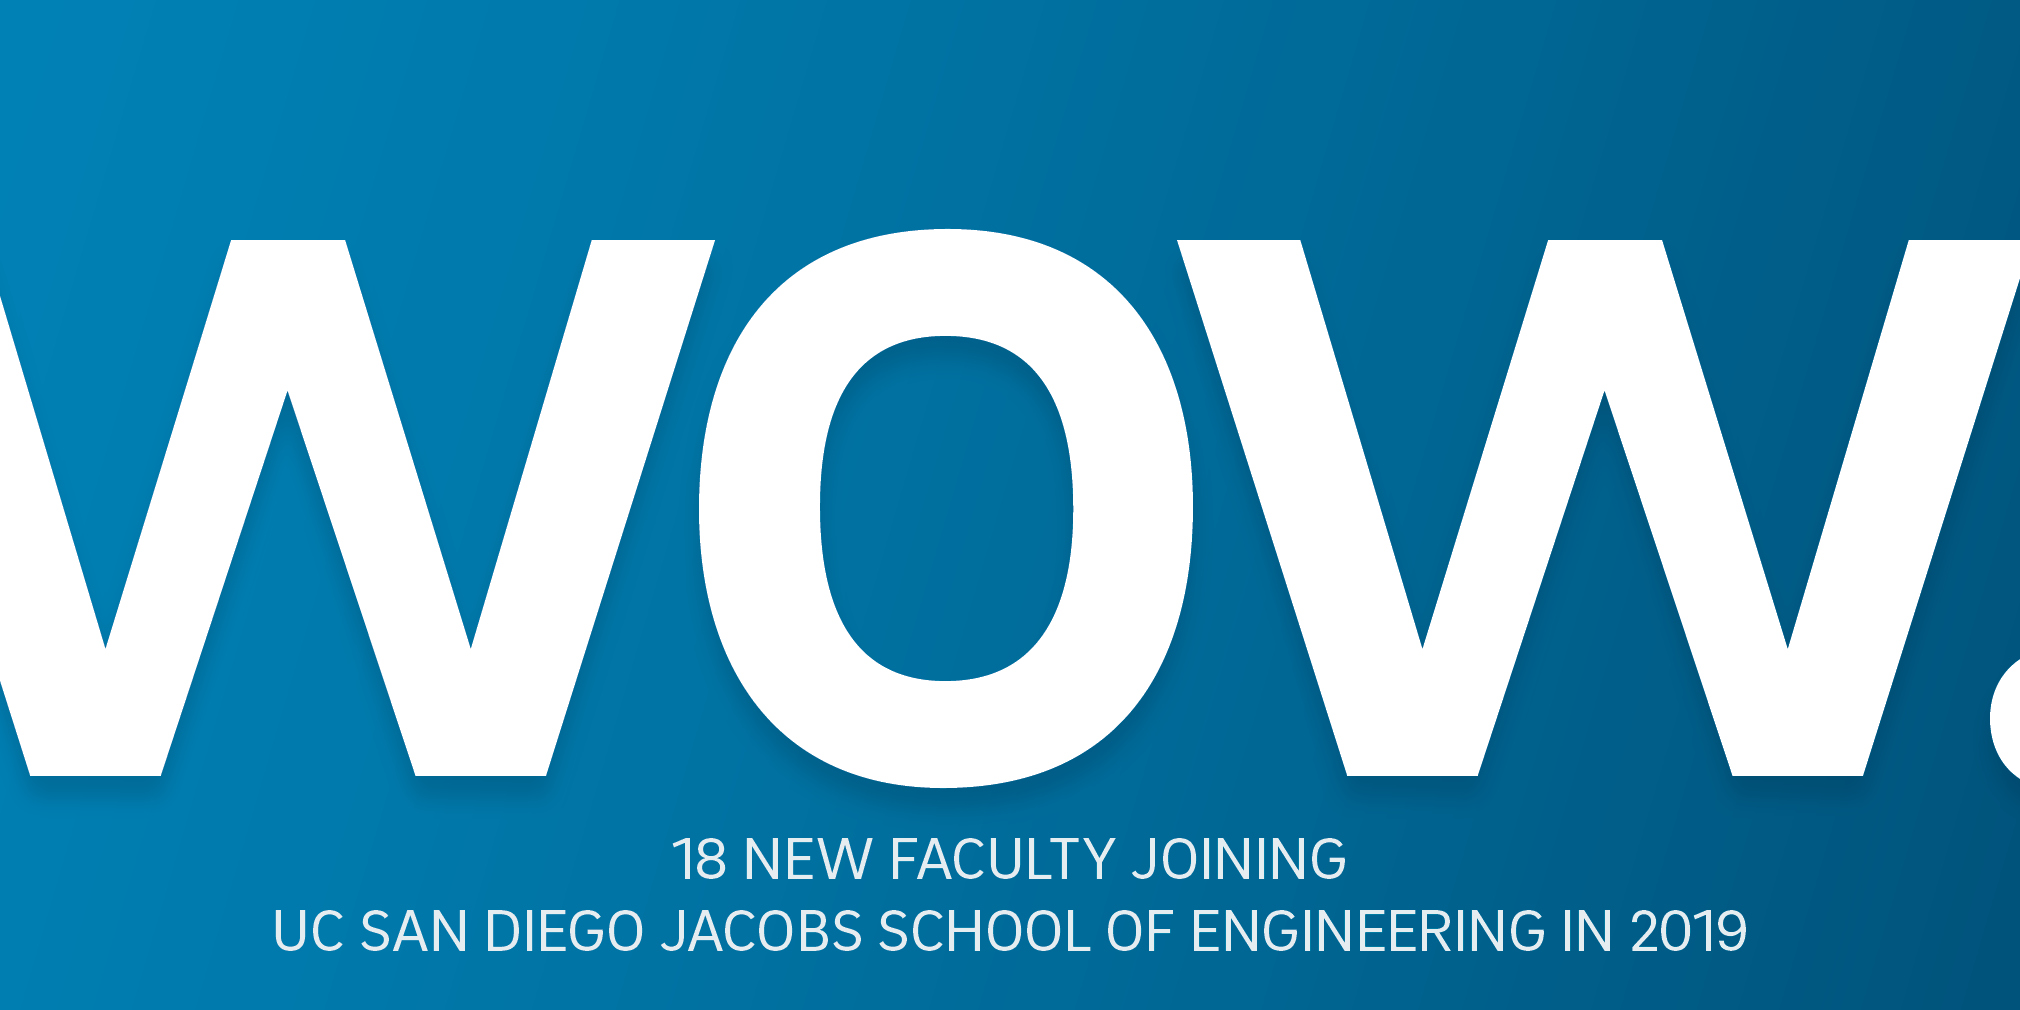 18 New Faculty Hires at the UC San Diego Jacobs School of Engineering in Fall 2019